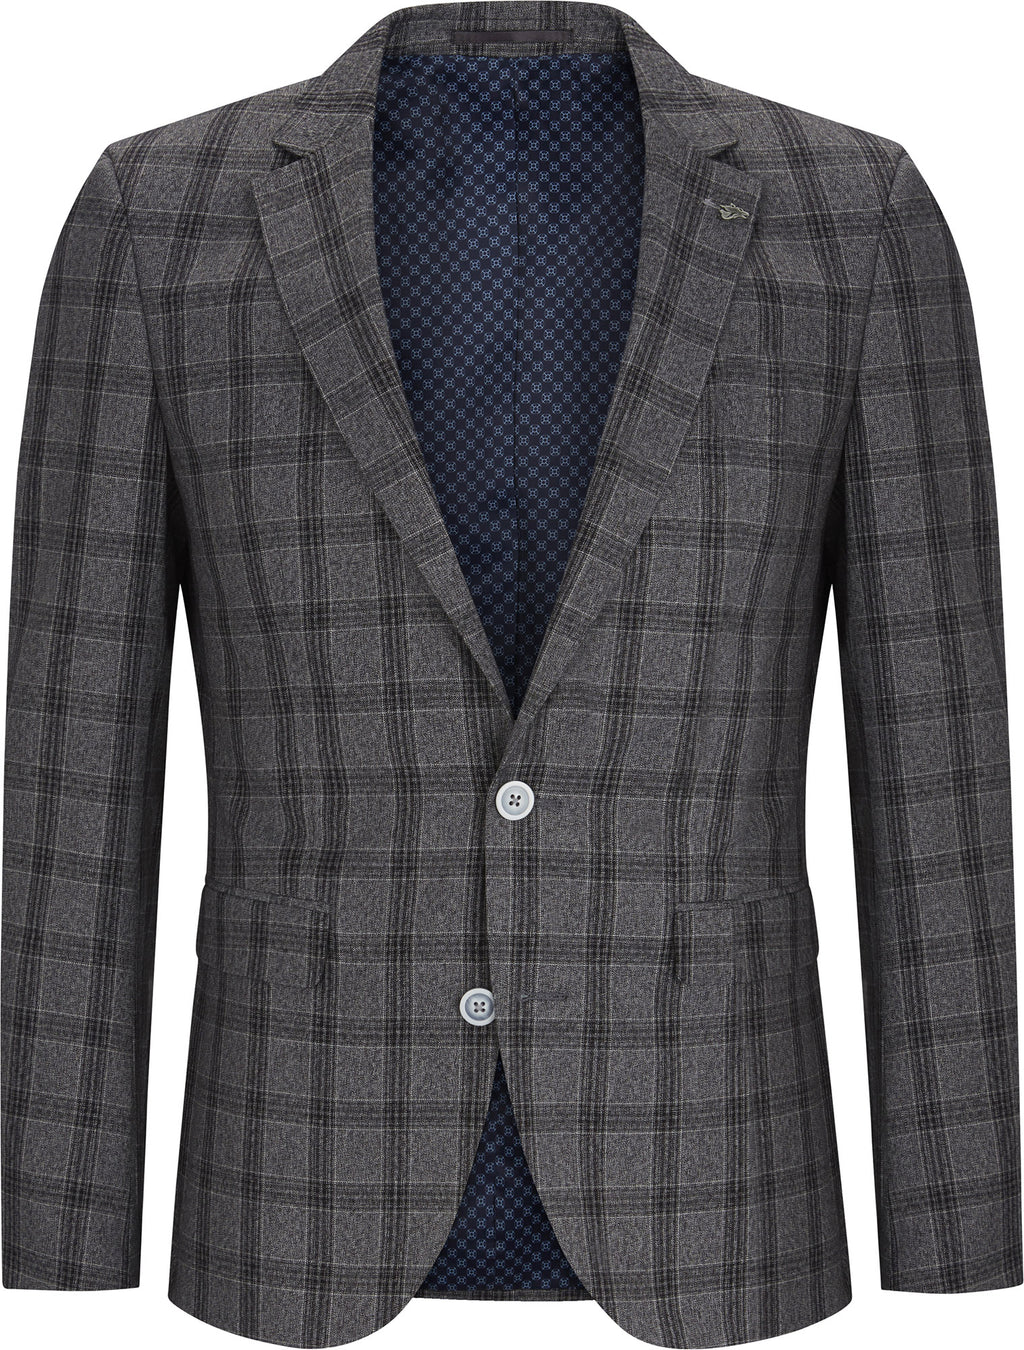 Grey Textured Check Jacket